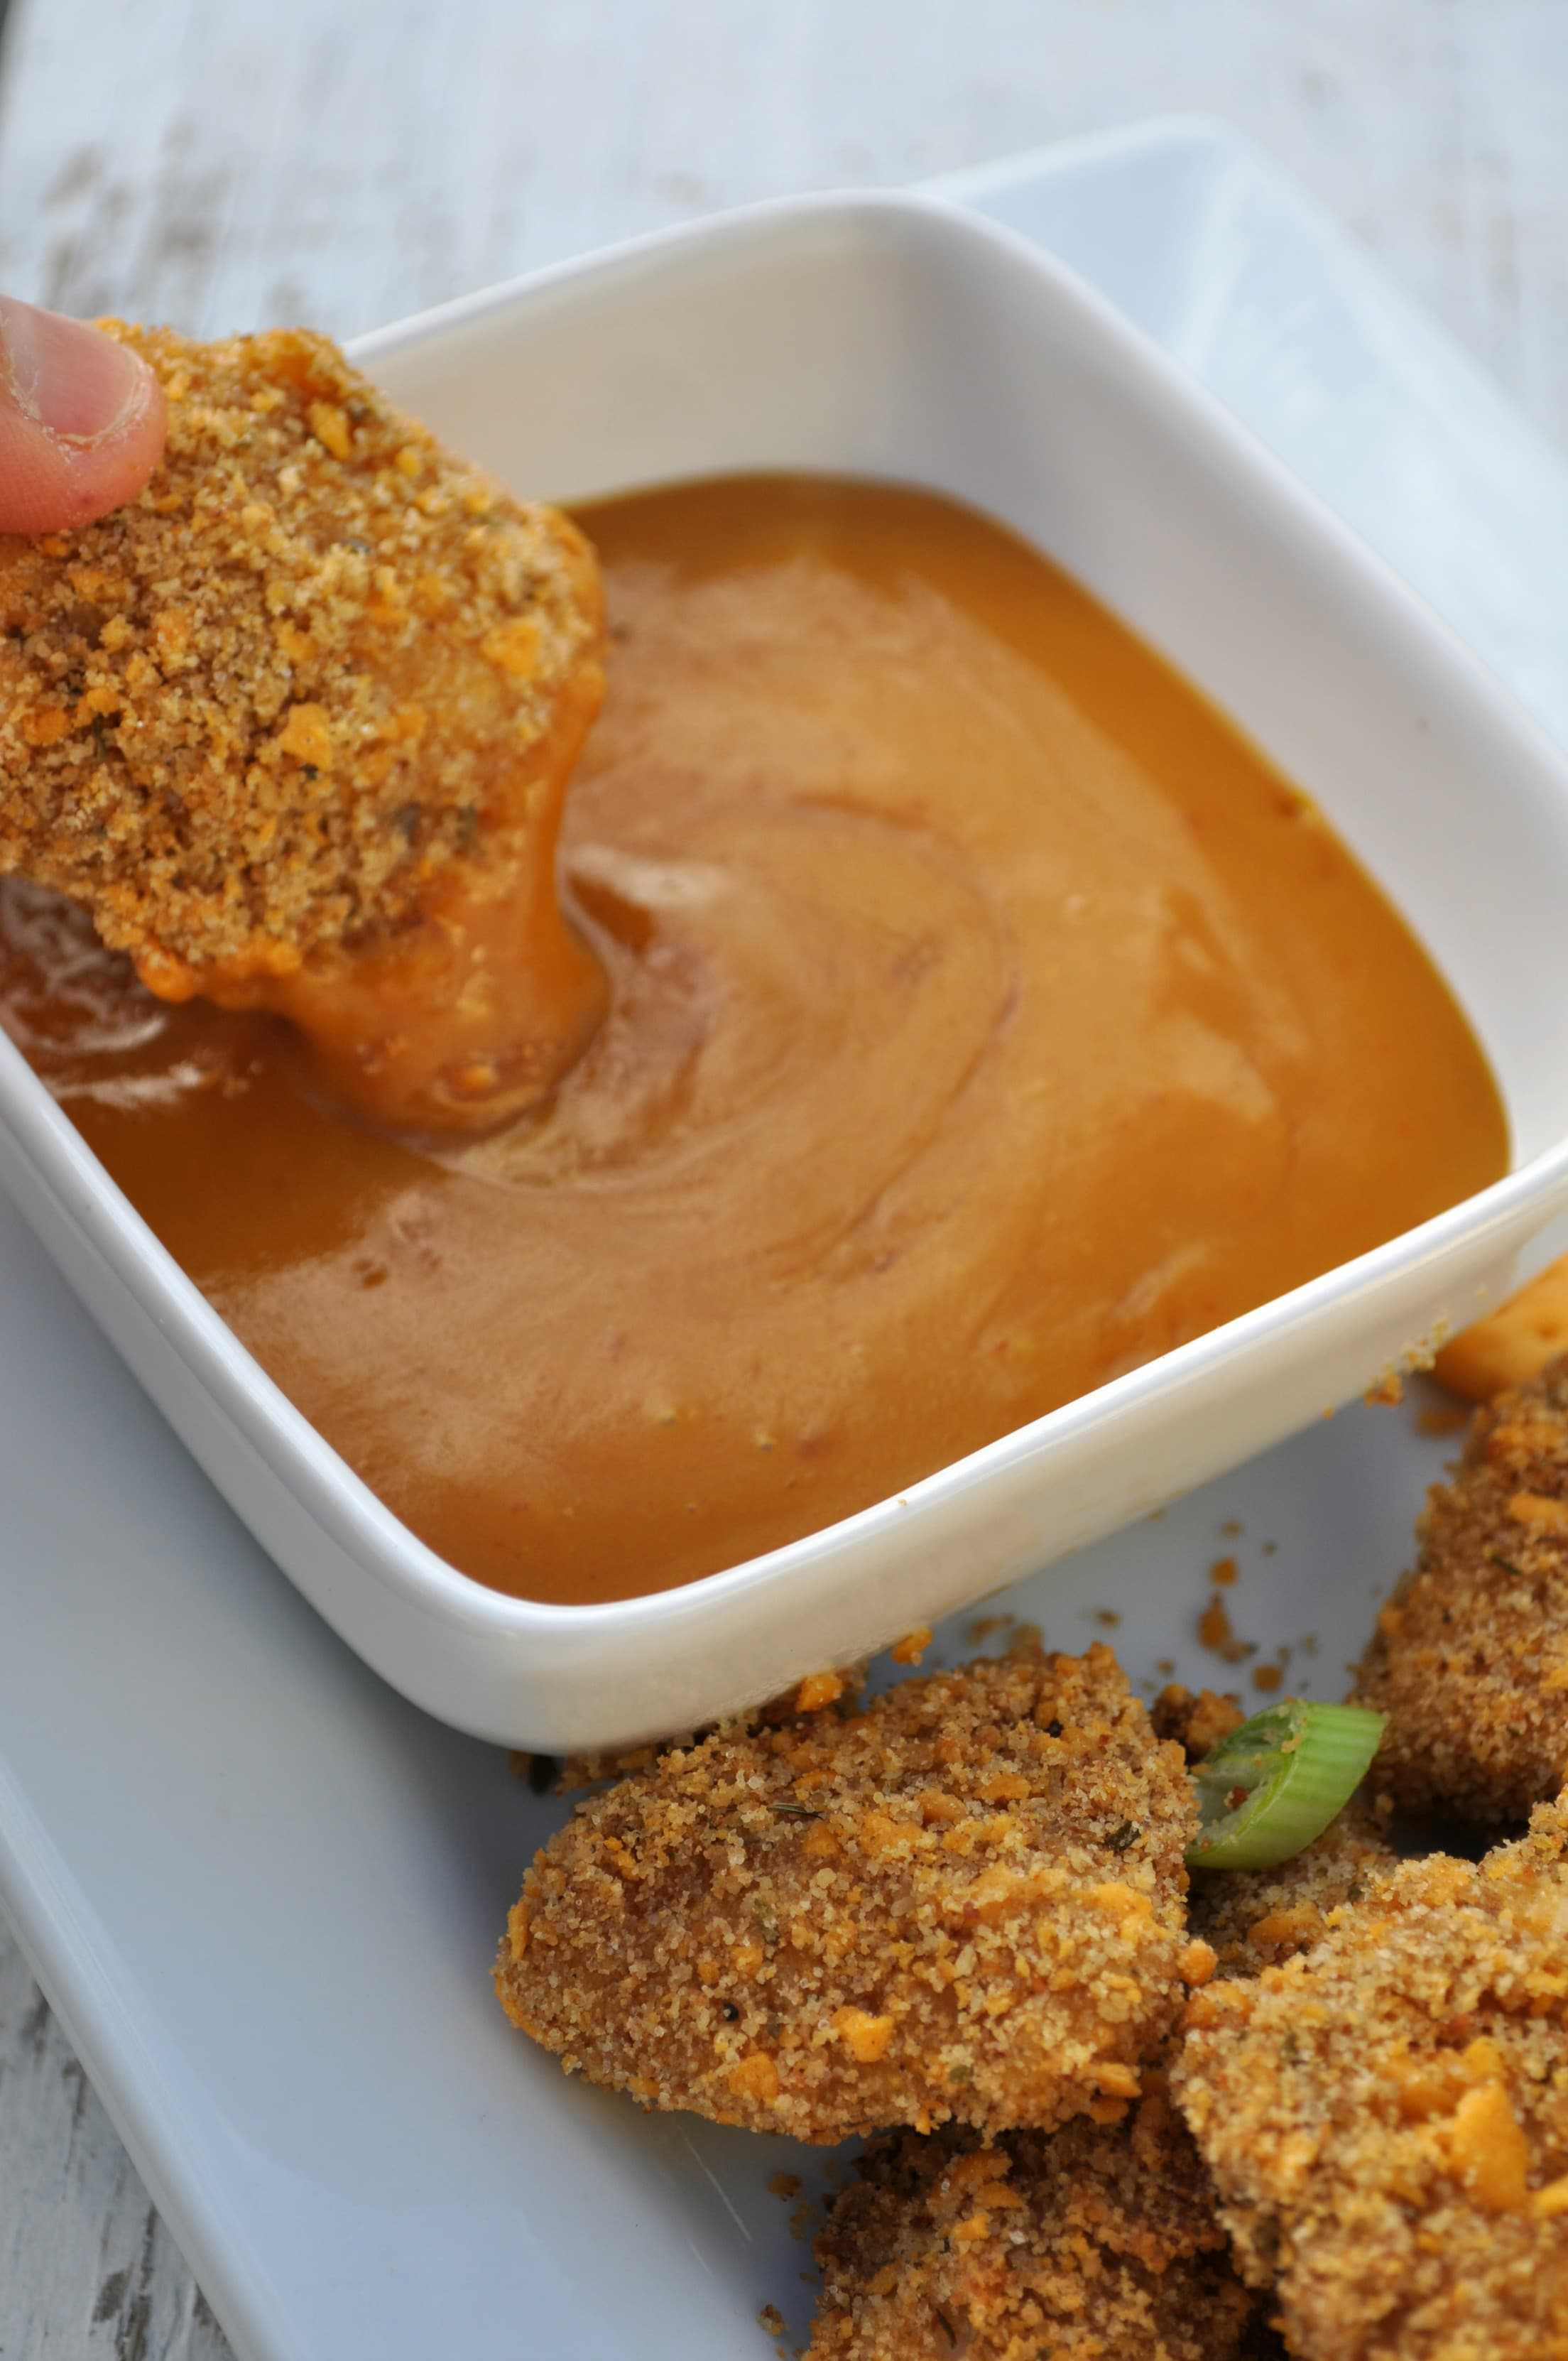 ... Chicken Nuggets with Honey Mustard Dipping Sauce - The Seasoned Mom